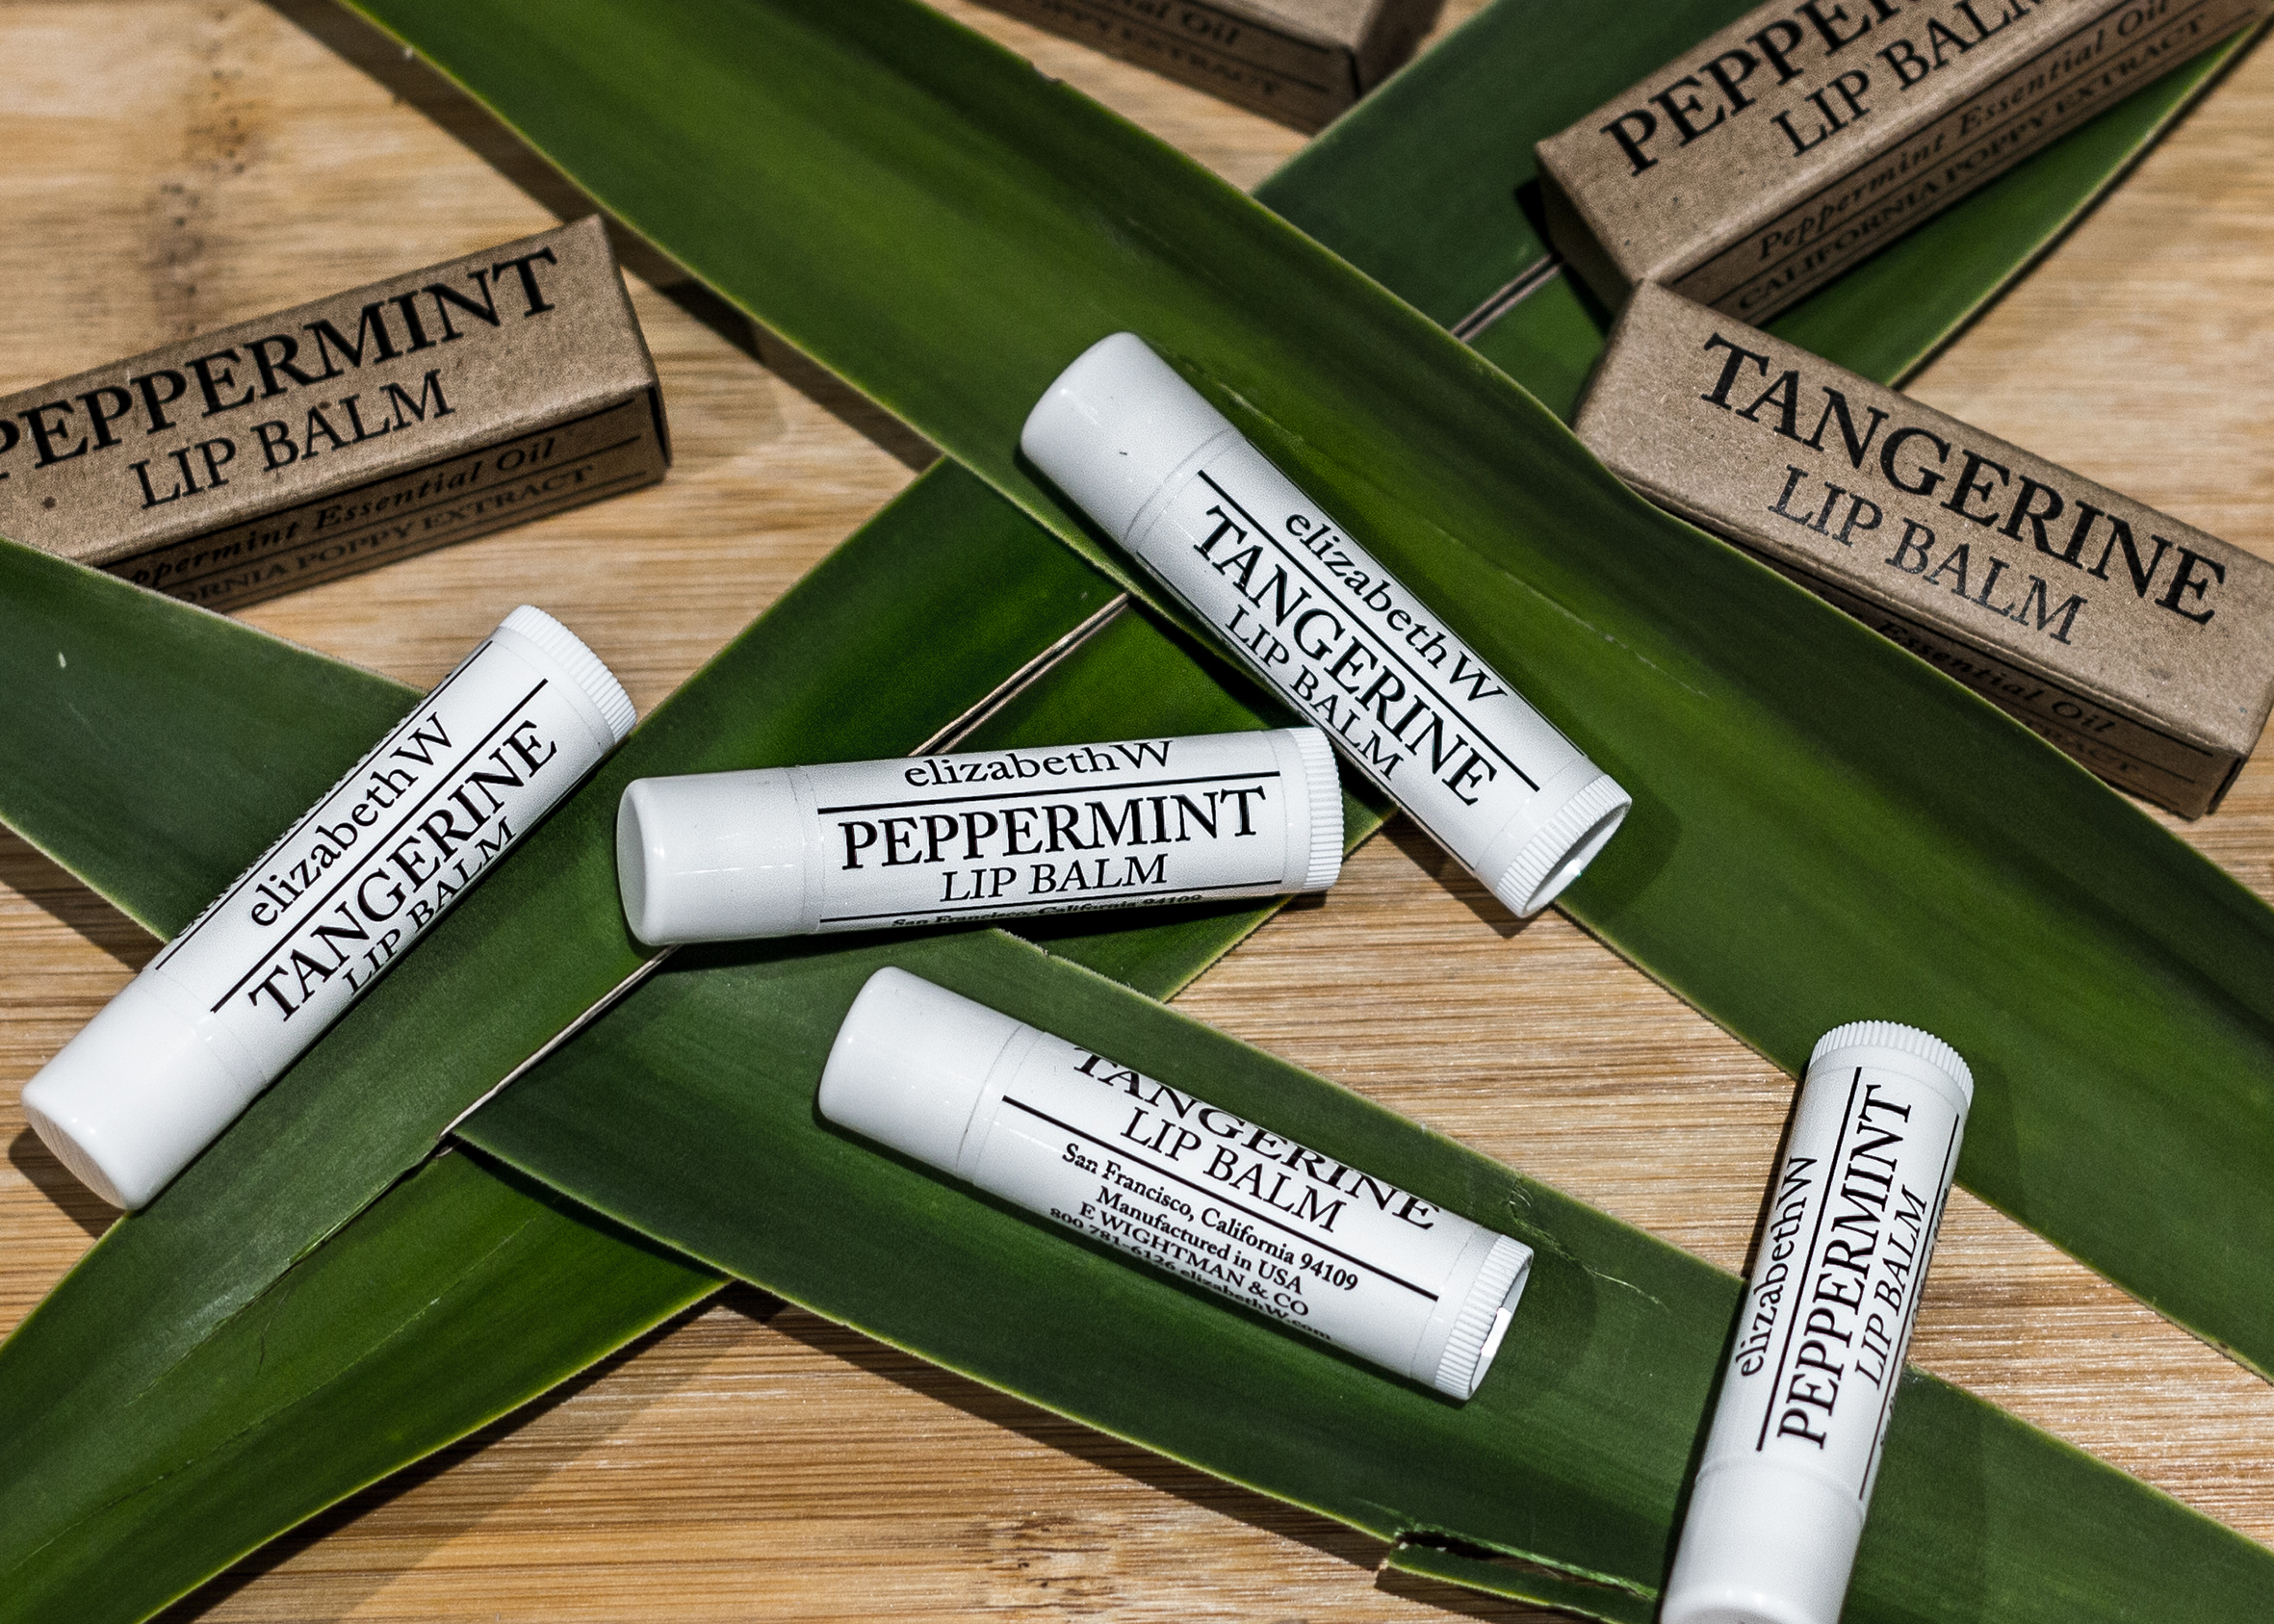 Elizabeth W Purely Essential Lip Balm